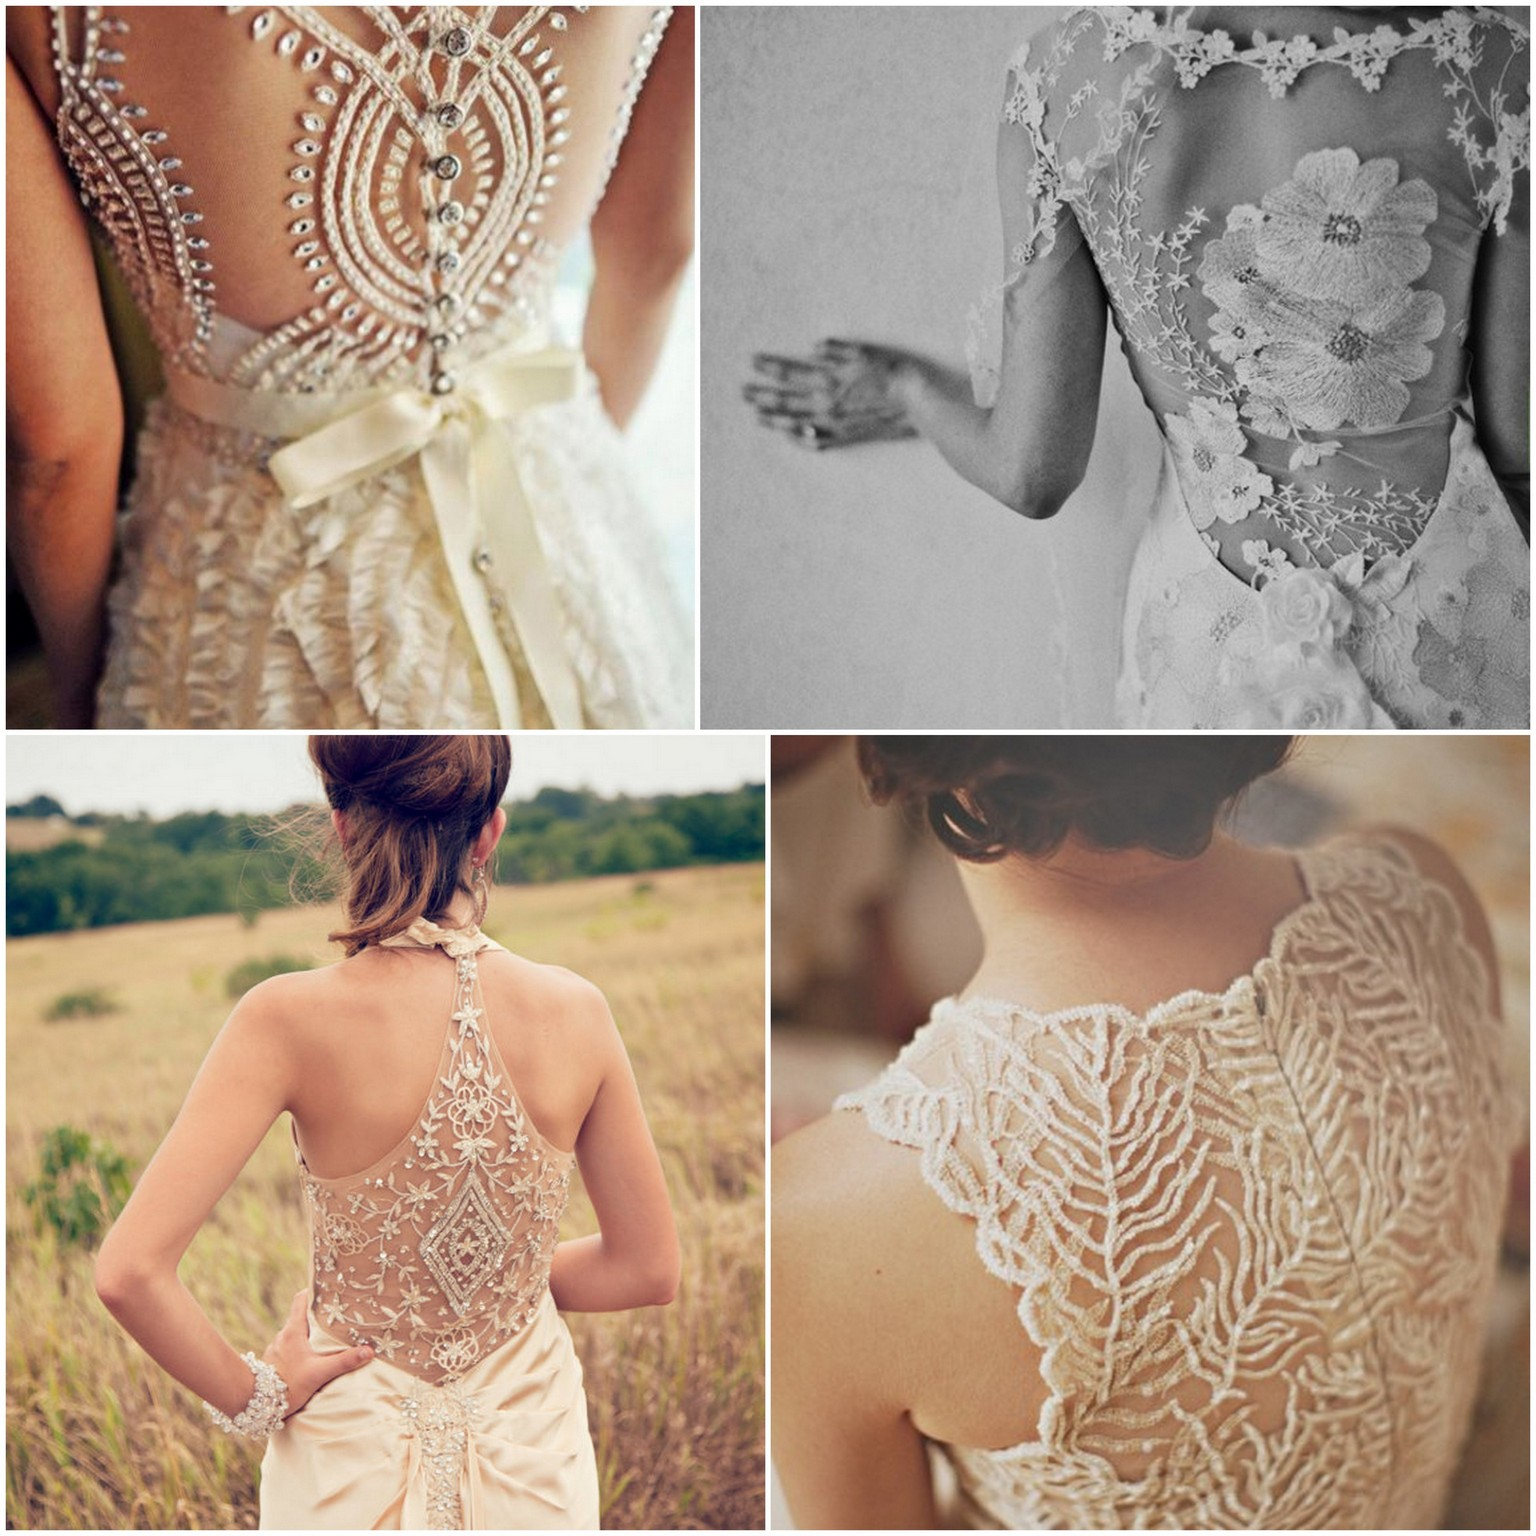 Magnificent Lace Back Wedding Dress 1536 x 1536 · 437 kB · jpeg